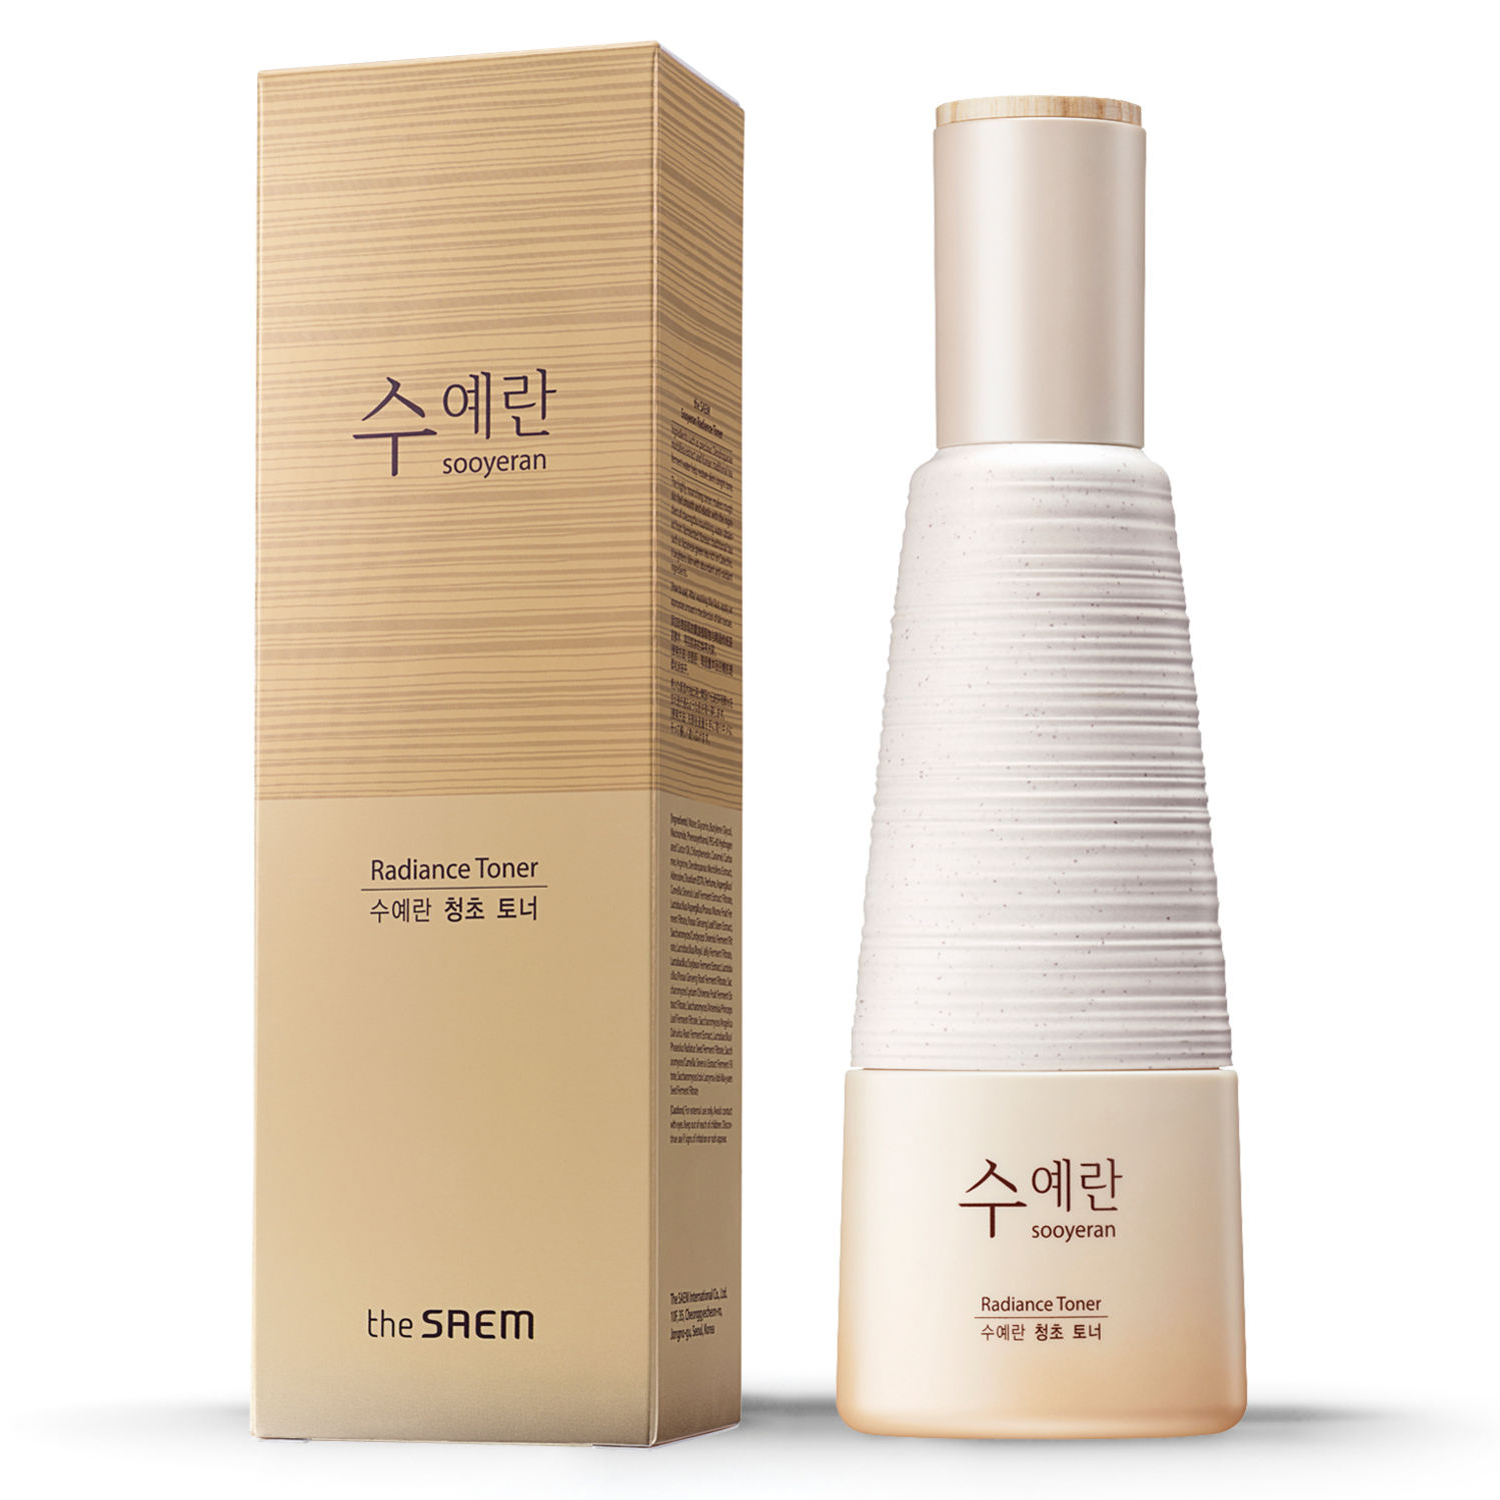 The Saem Sooyeran Radiance Toner